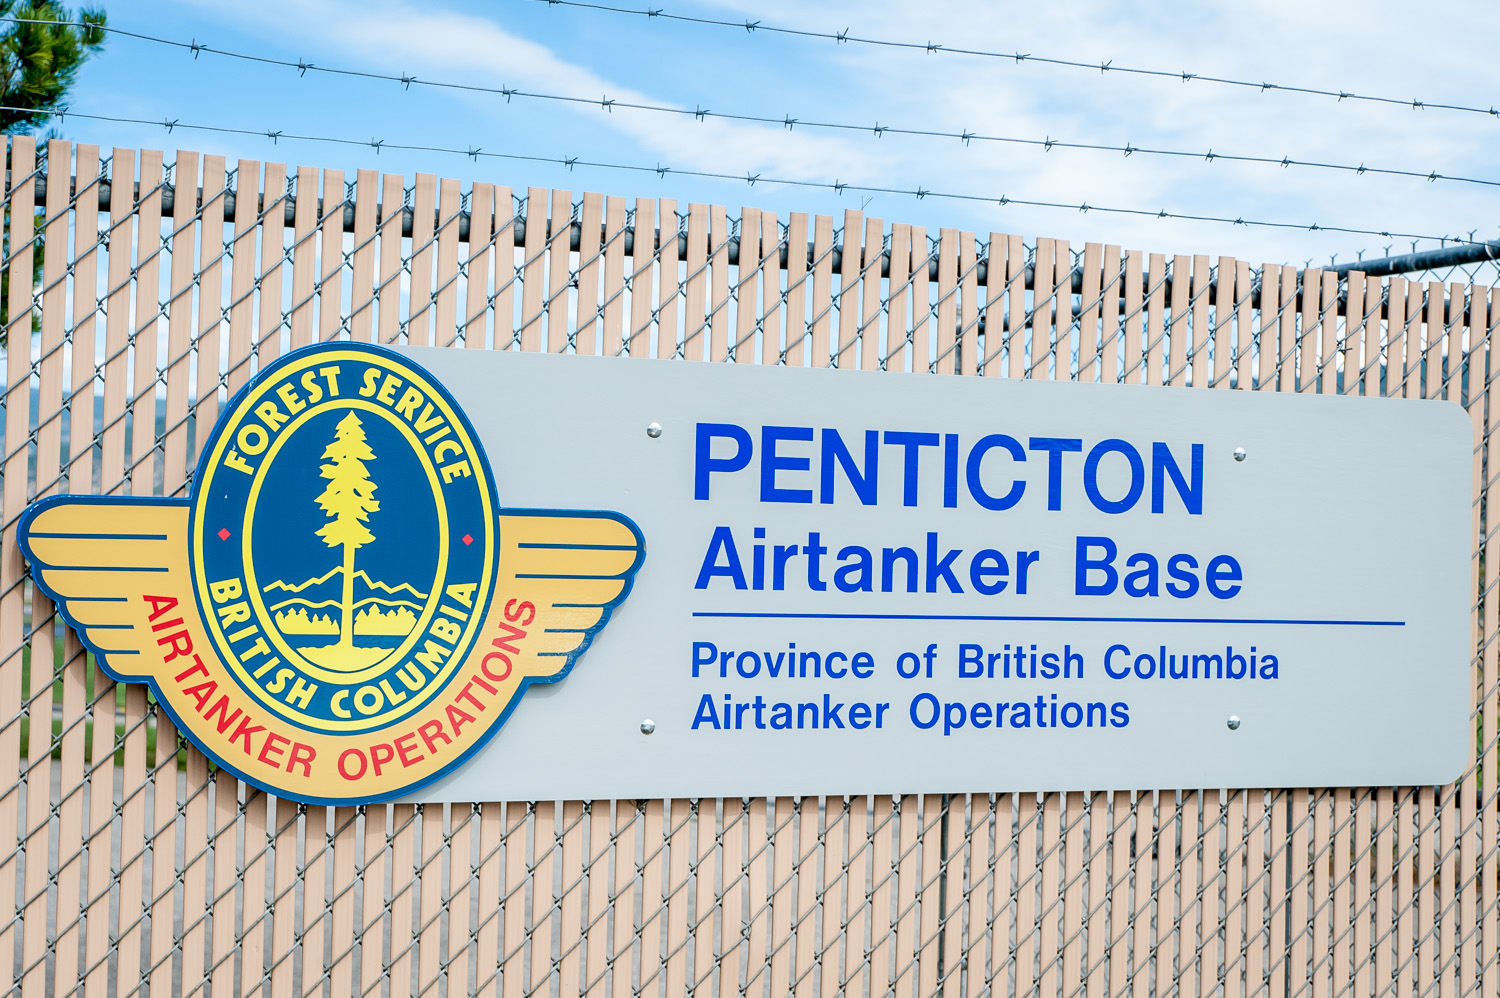 Penticton Airtanker Base